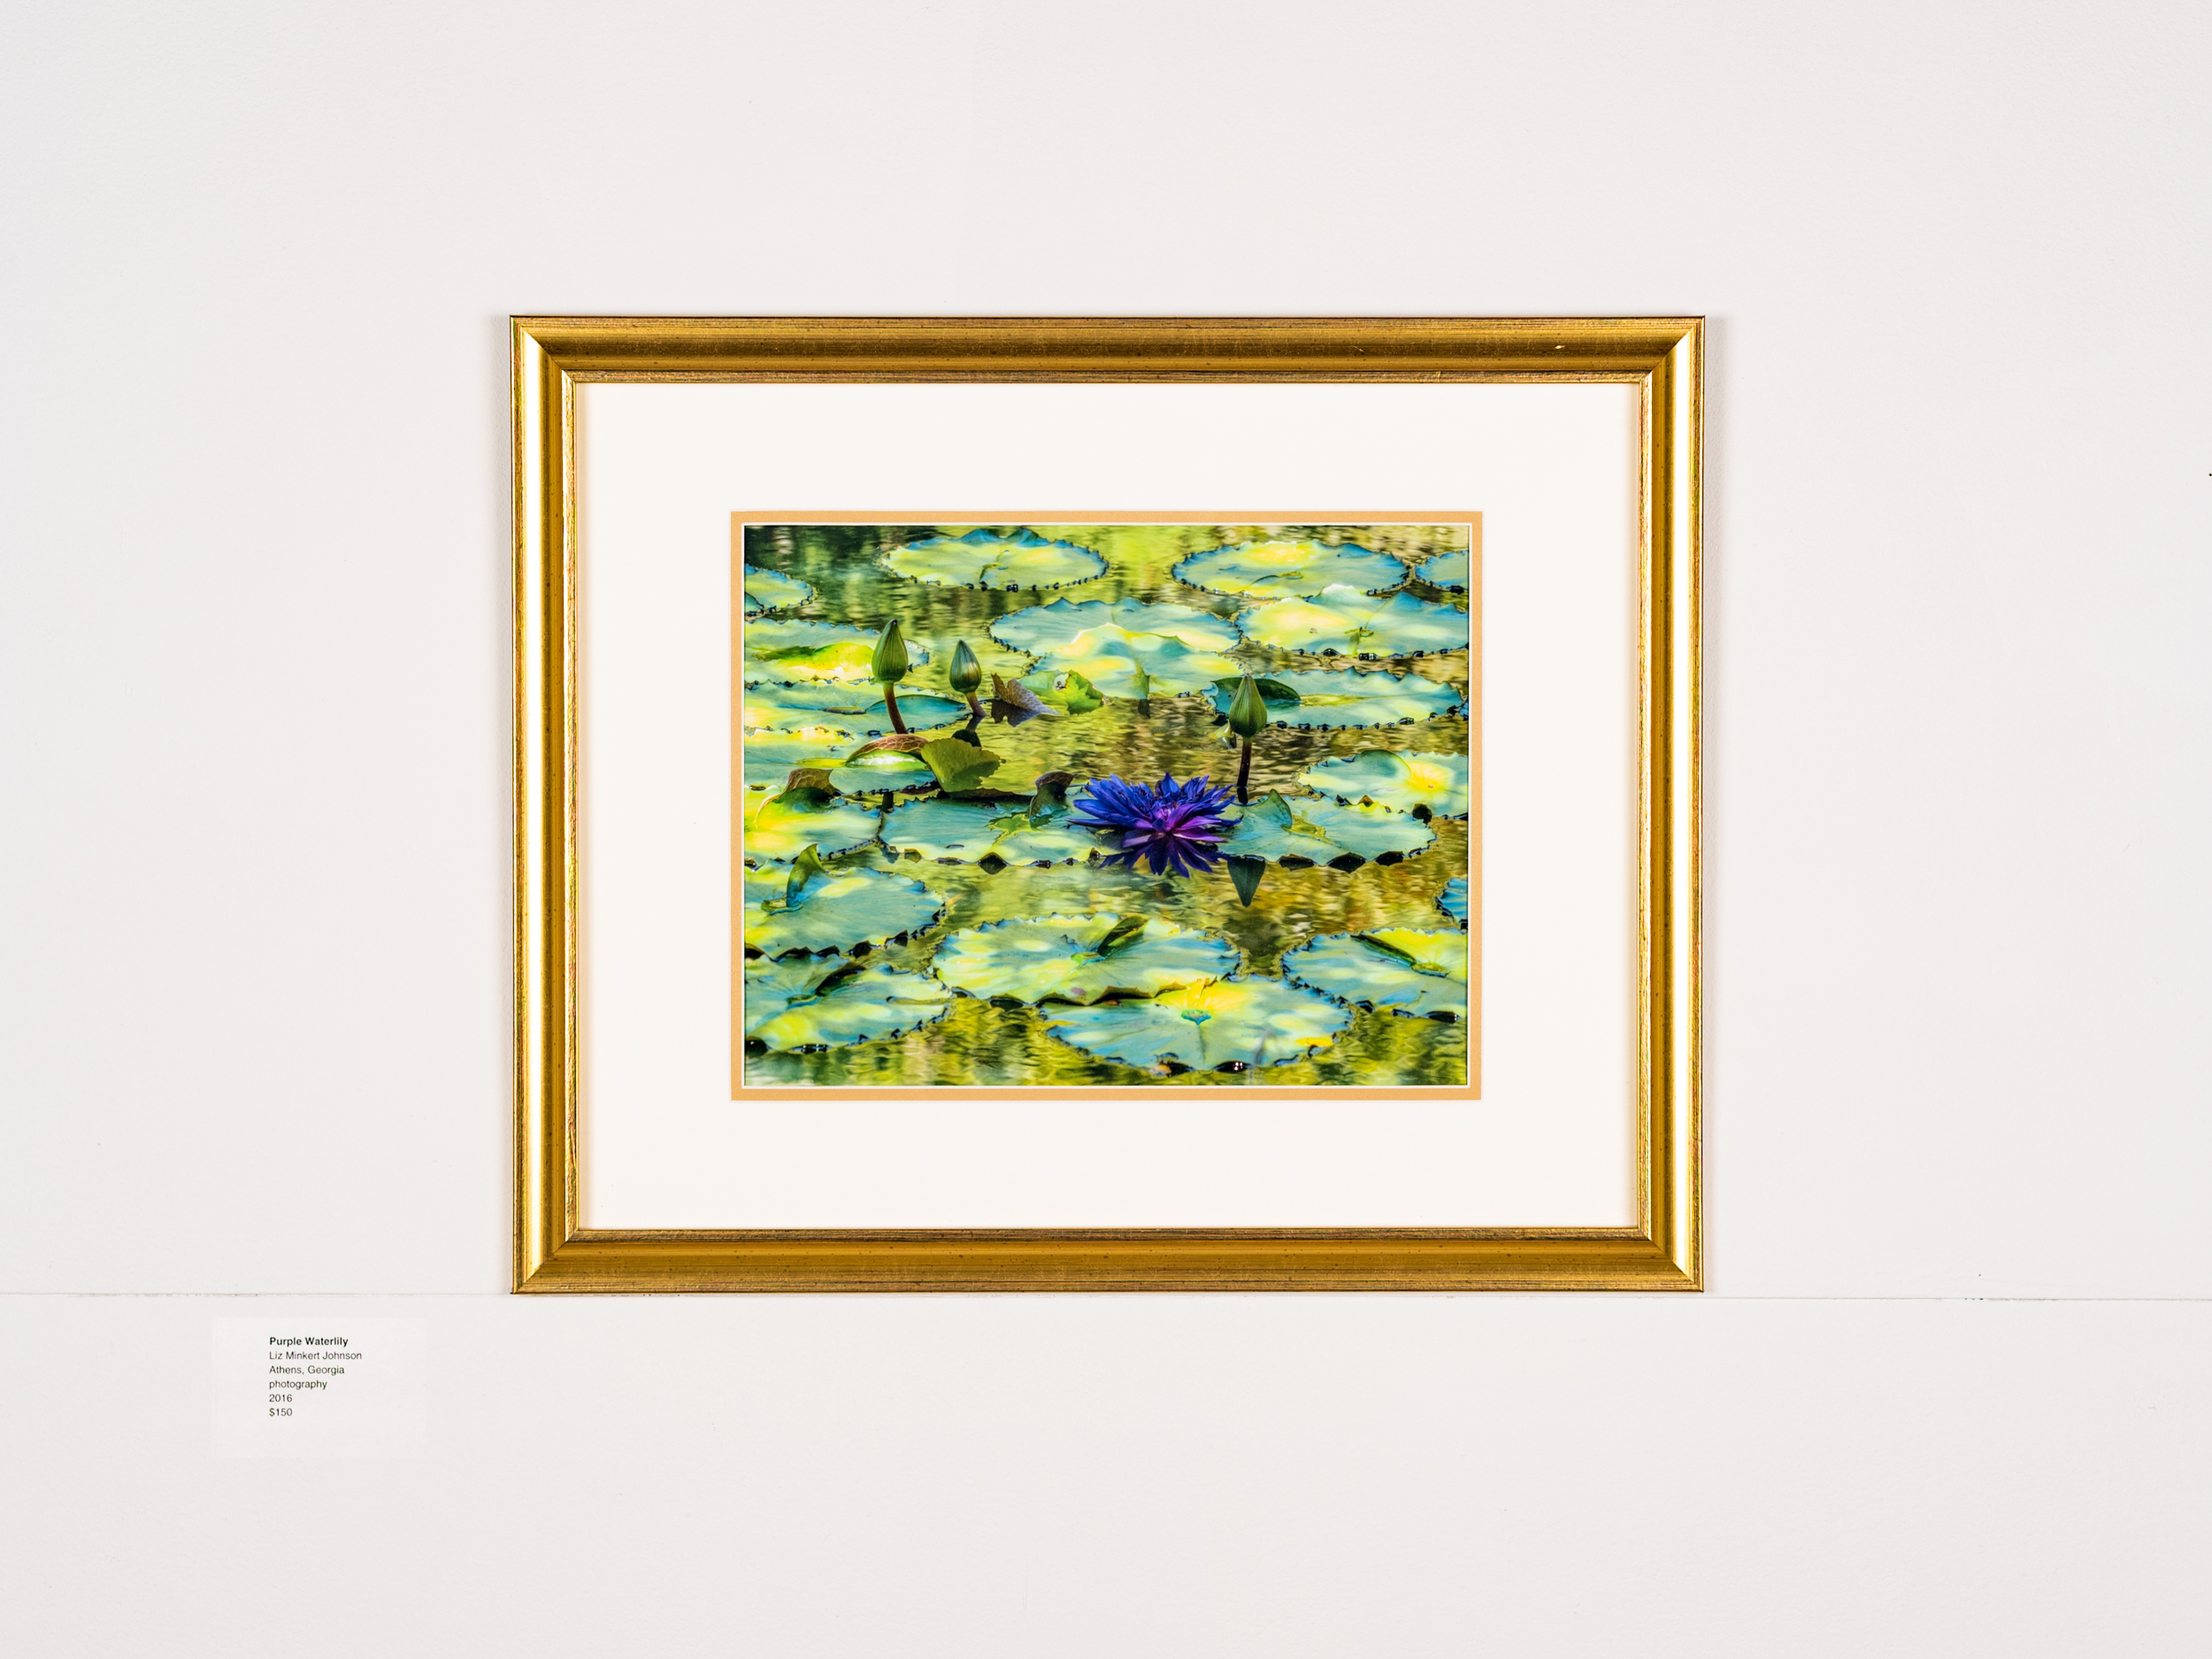 Purple Waterlily Liz Minkert Johnson    Athens  GA Photography  2016 $150